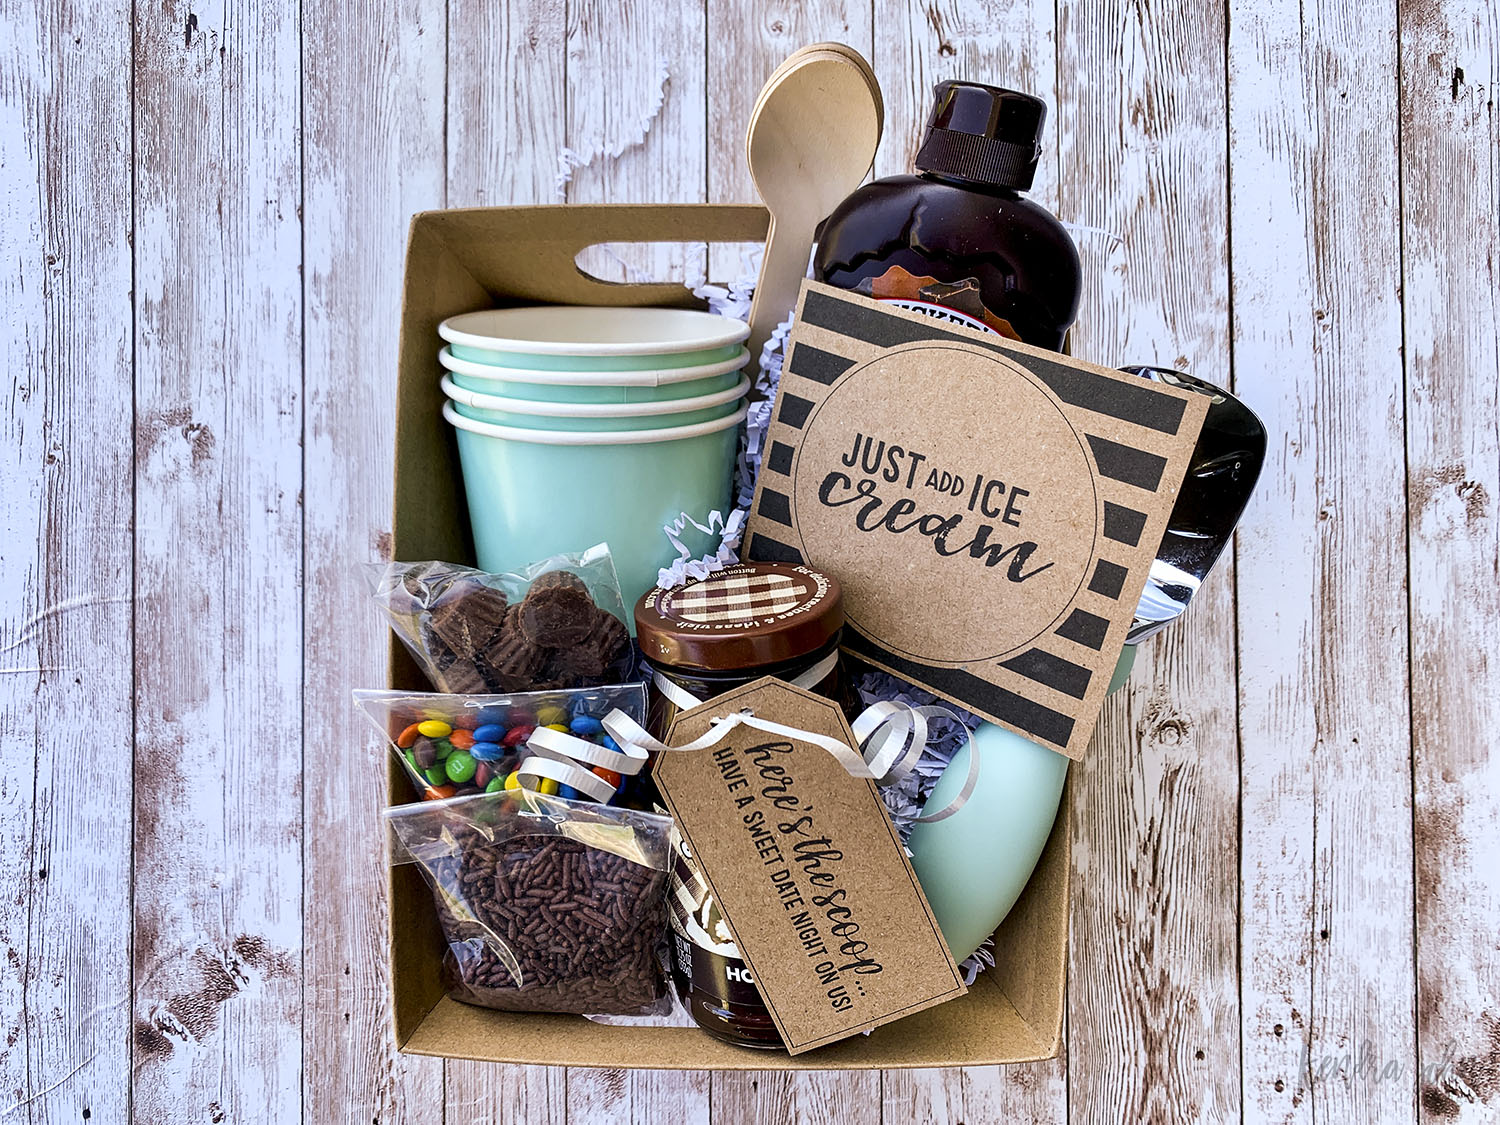 Ice Cream Gift Basket on Wood Background